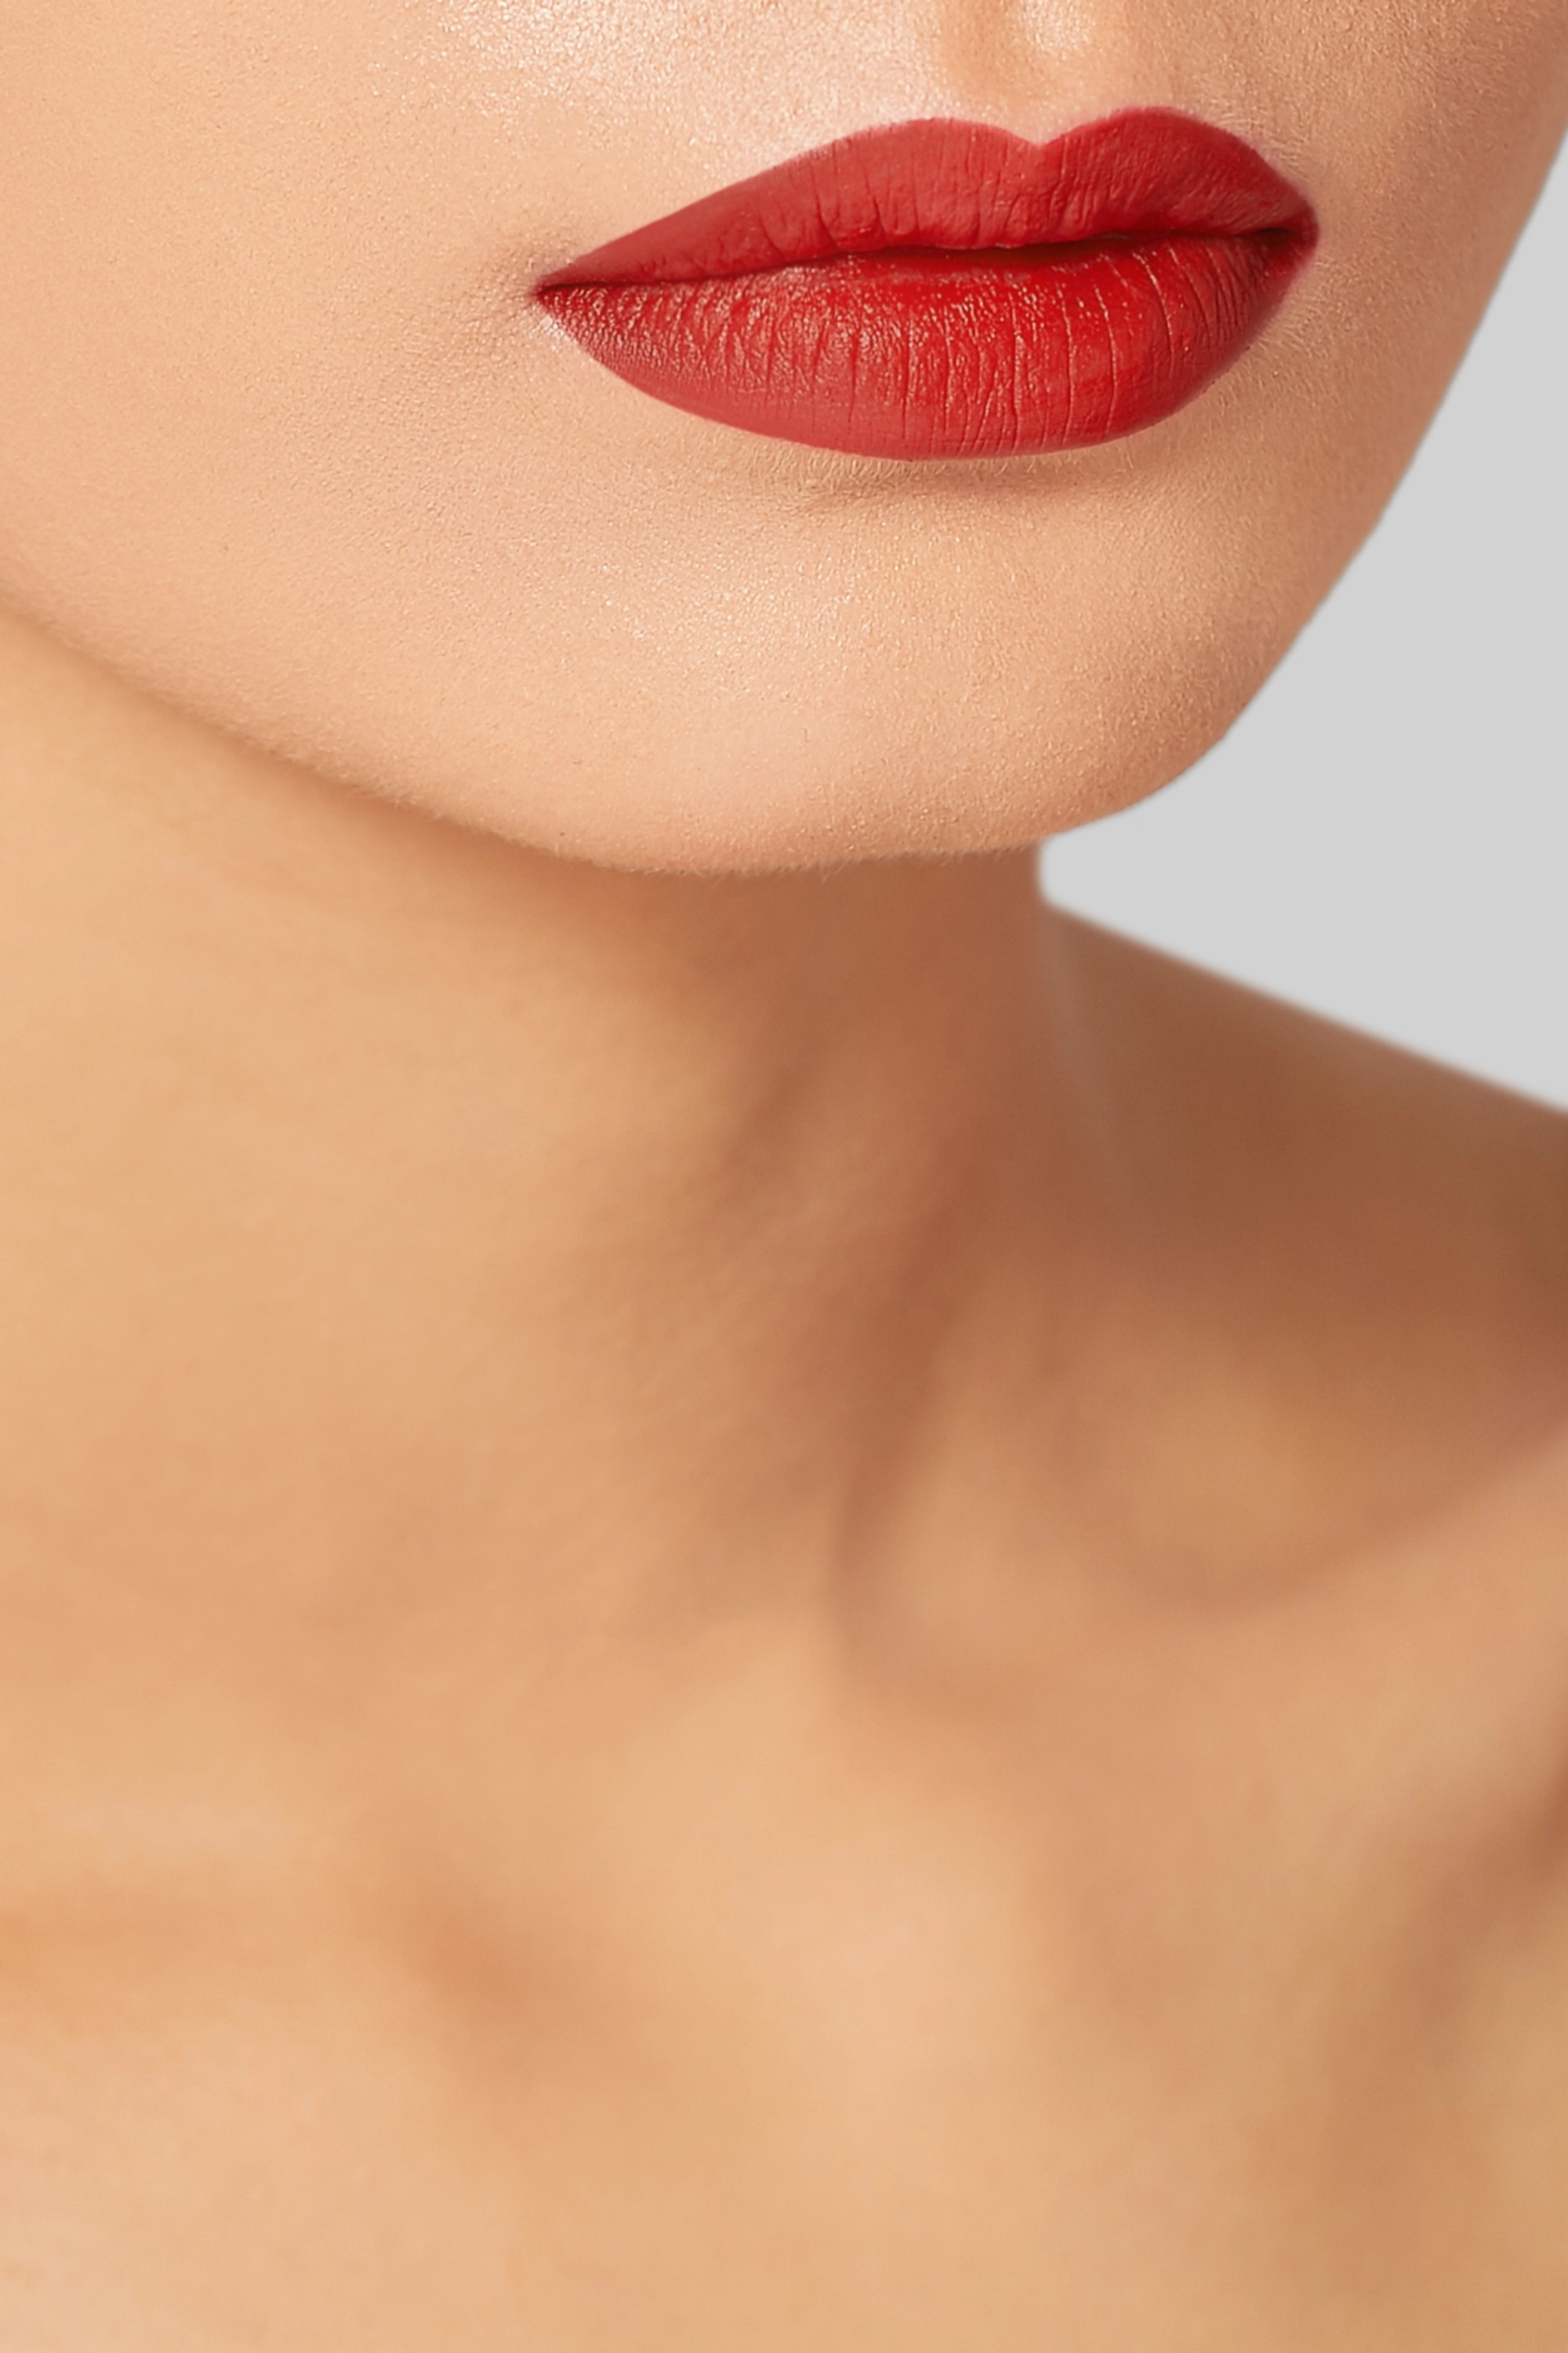 Charlotte Tilbury Hot Lips 2 Lipstick - Red Hot Susan